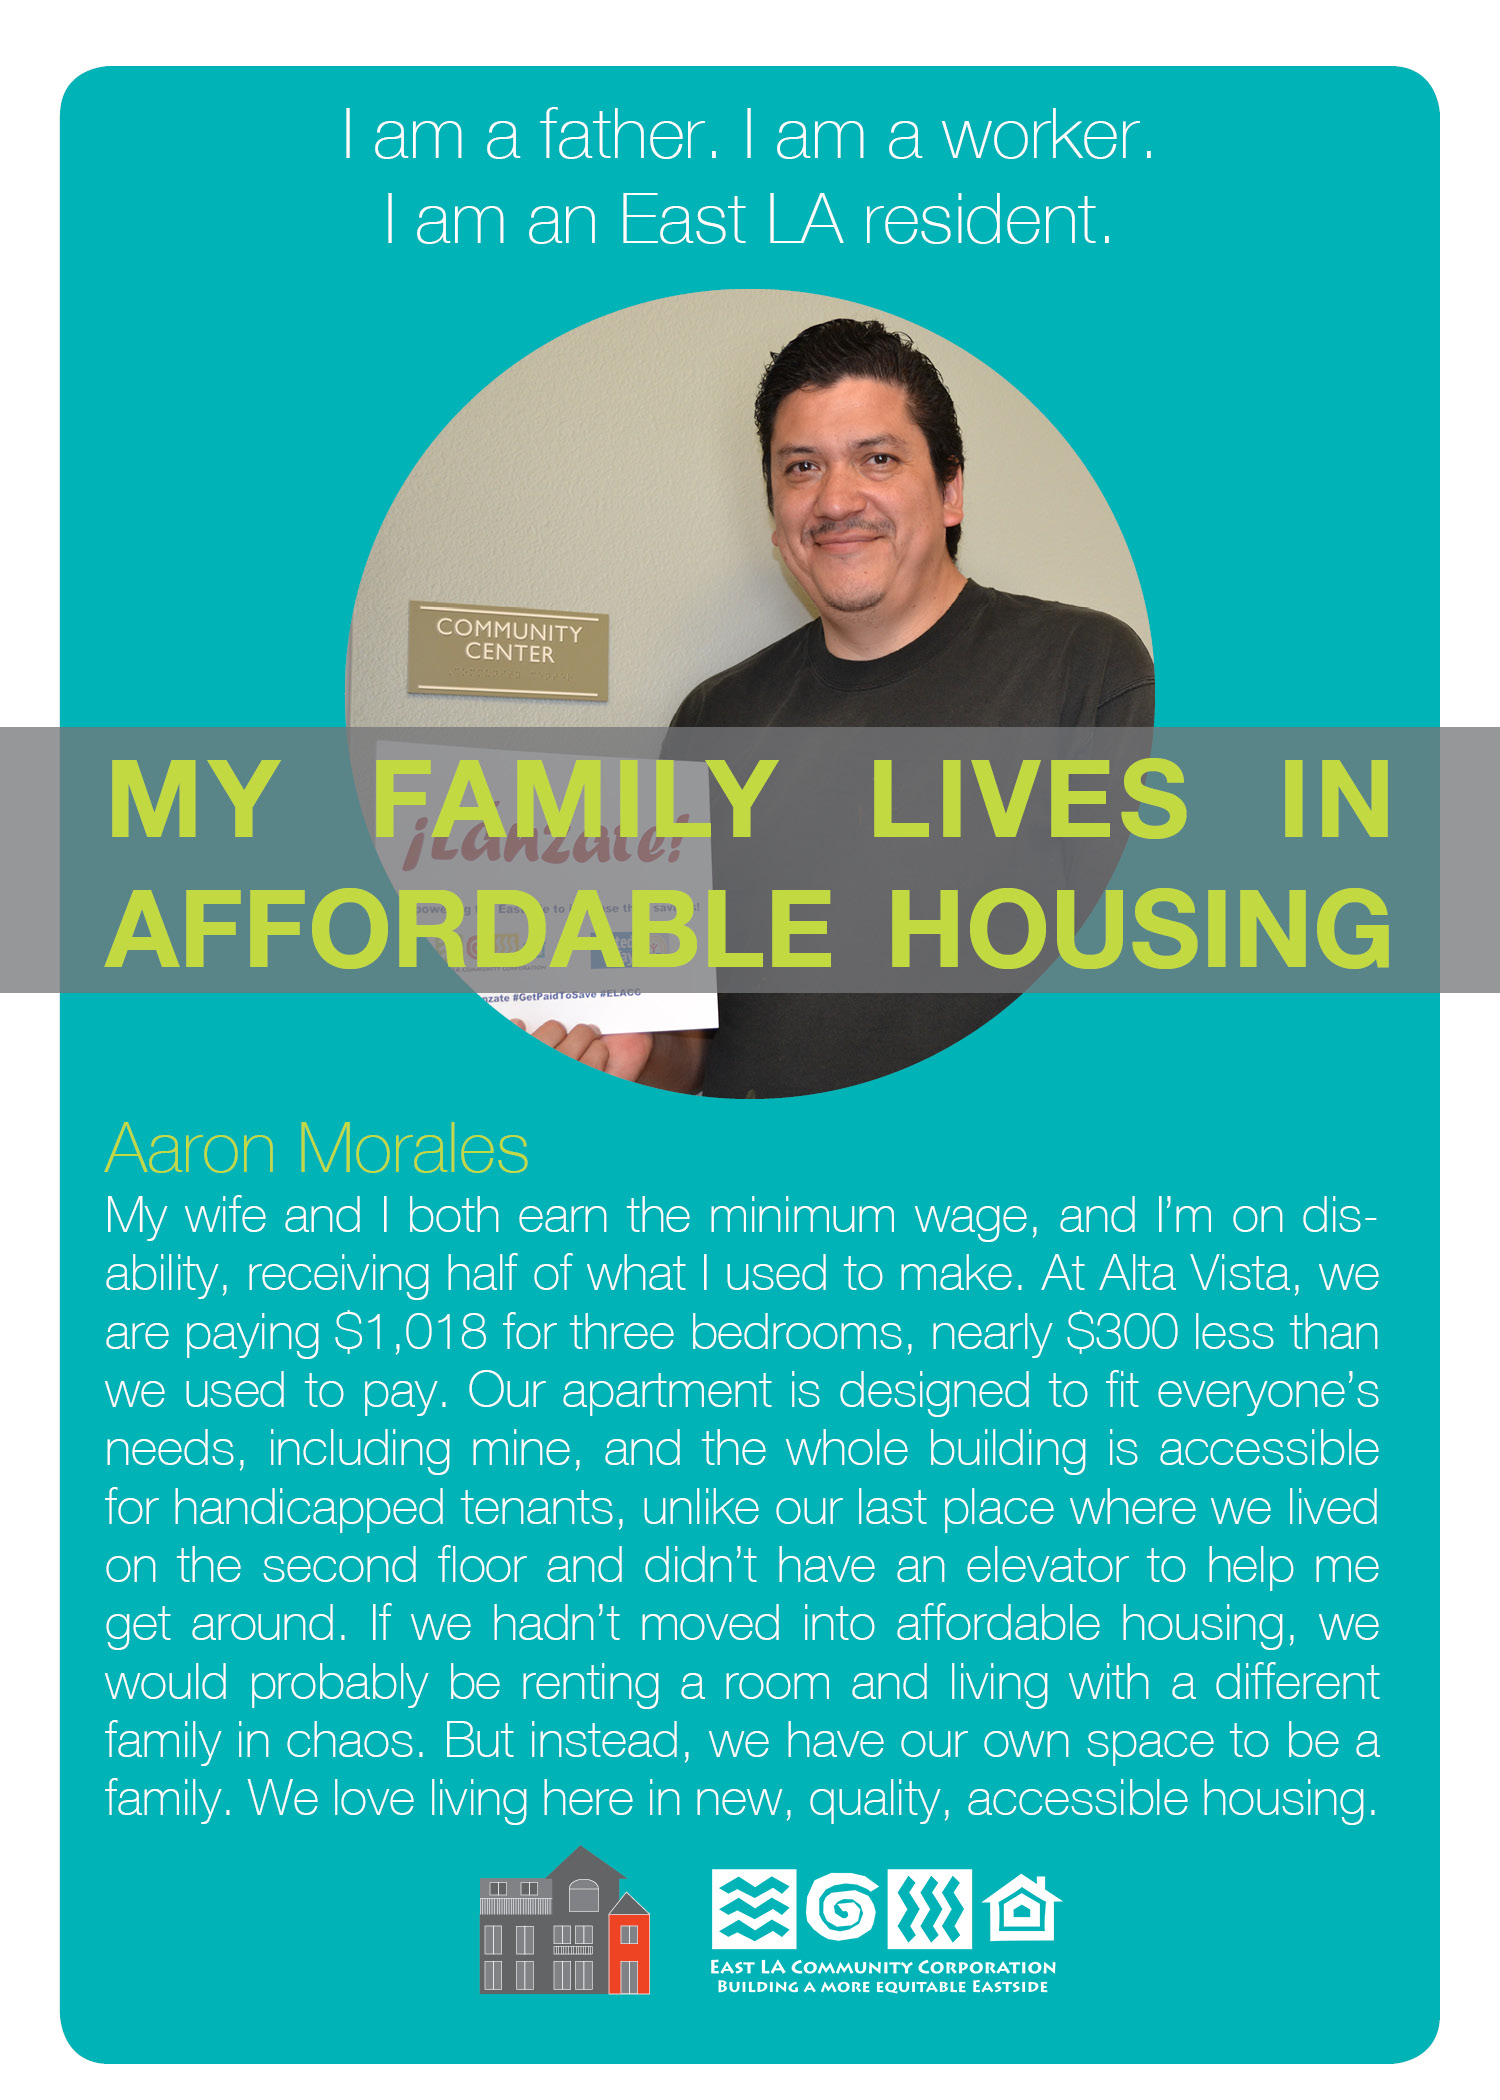 3_-_Live_in_Affordable_Housing-_Aaron_V2-_JPEG.jpg